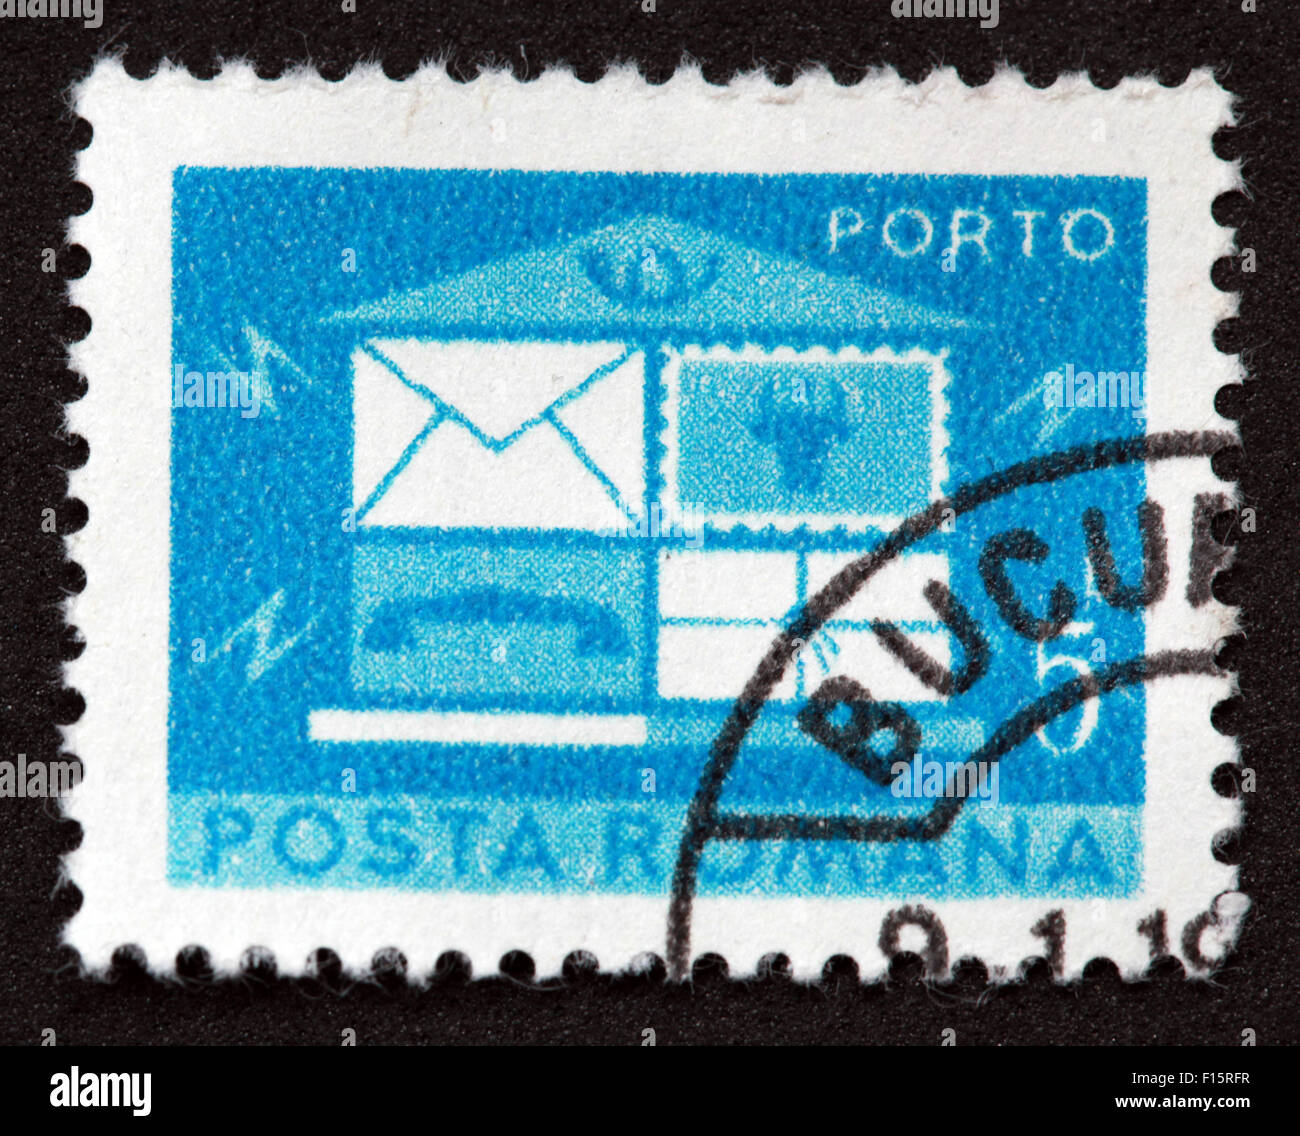 International Post,star,Used and Postmarked,Used,and,postmarked,perforated,stamp,Used,and,postmarked,Stamp,post,posting,mail,hobby,perforation,mark,postage,stamp,print,stamp,cancelled,stamp,payment,correspondence,postman,collection,collector,phila,USSR,Soviet,Bloc,Block,East,Eastern,Europe,Romainian,Bucurest,Romania,Gotonysmith,post,posting,mail,hobby,perforation,mark,postage,stamp,print,stamp,cancelled,canceled,stamp,payment,correspondence,postman,collection,collector,philately,philatelist,letter,price,history,retro,Australian,Vintage,delivery,date,relationship,communication,Oz,Australia,DownUnder,classic rare unique Austrailian financial,investment,invest,value,British,empire,nation,canceled,printed on black background,close-up,closeup,close,up,sent,send,philately,mailing,shipping,postoffice,office,isolated,circa,special,colour,color,postmarked,marked,airmail,aged,antique,retro,cutting,historic,old,stamps,collection,stamp collection,album,Timbre,Sello,Stempel,Selo,Buy Pictures of,Buy Images Of,Down Under,Black background